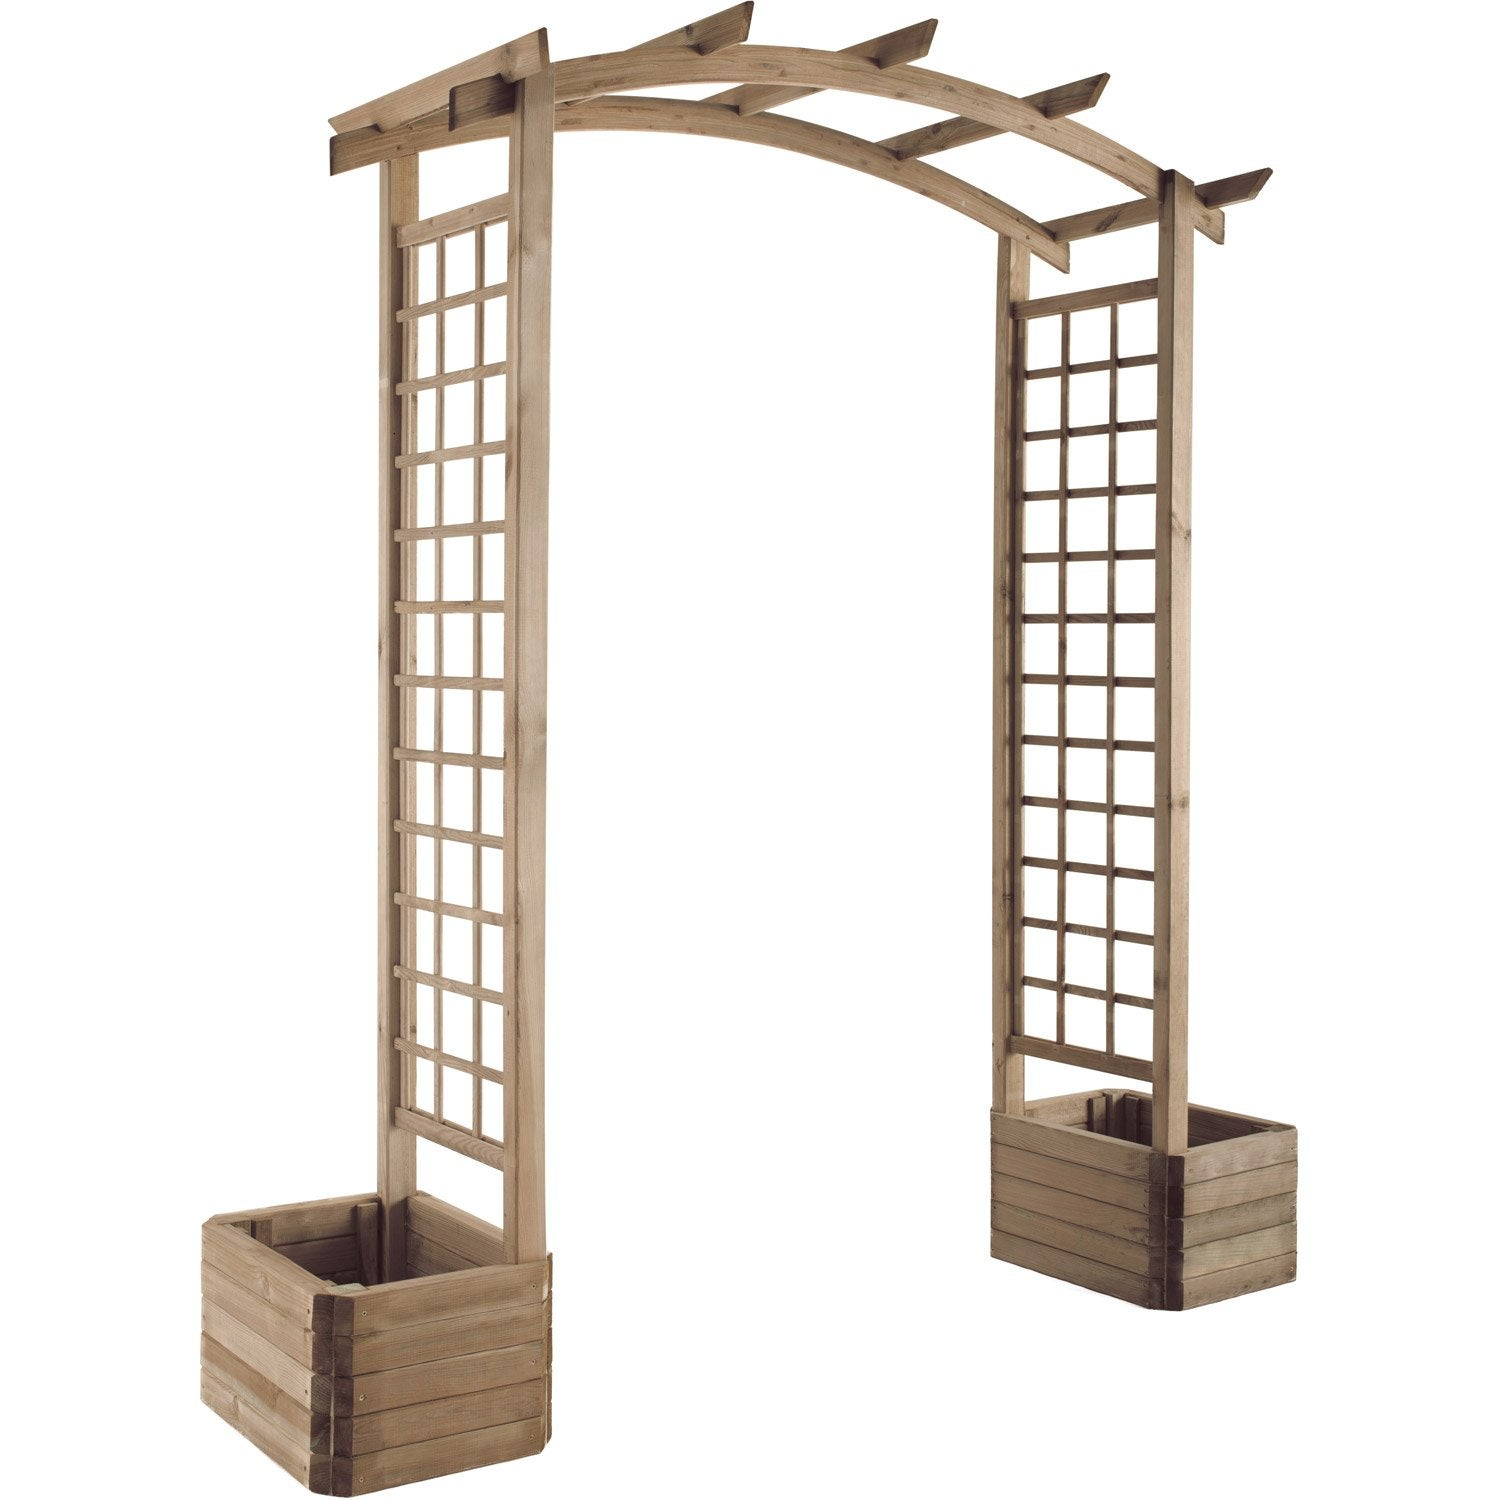 Pergola double burger sologne x x cm for Magasin de plantes pas cher